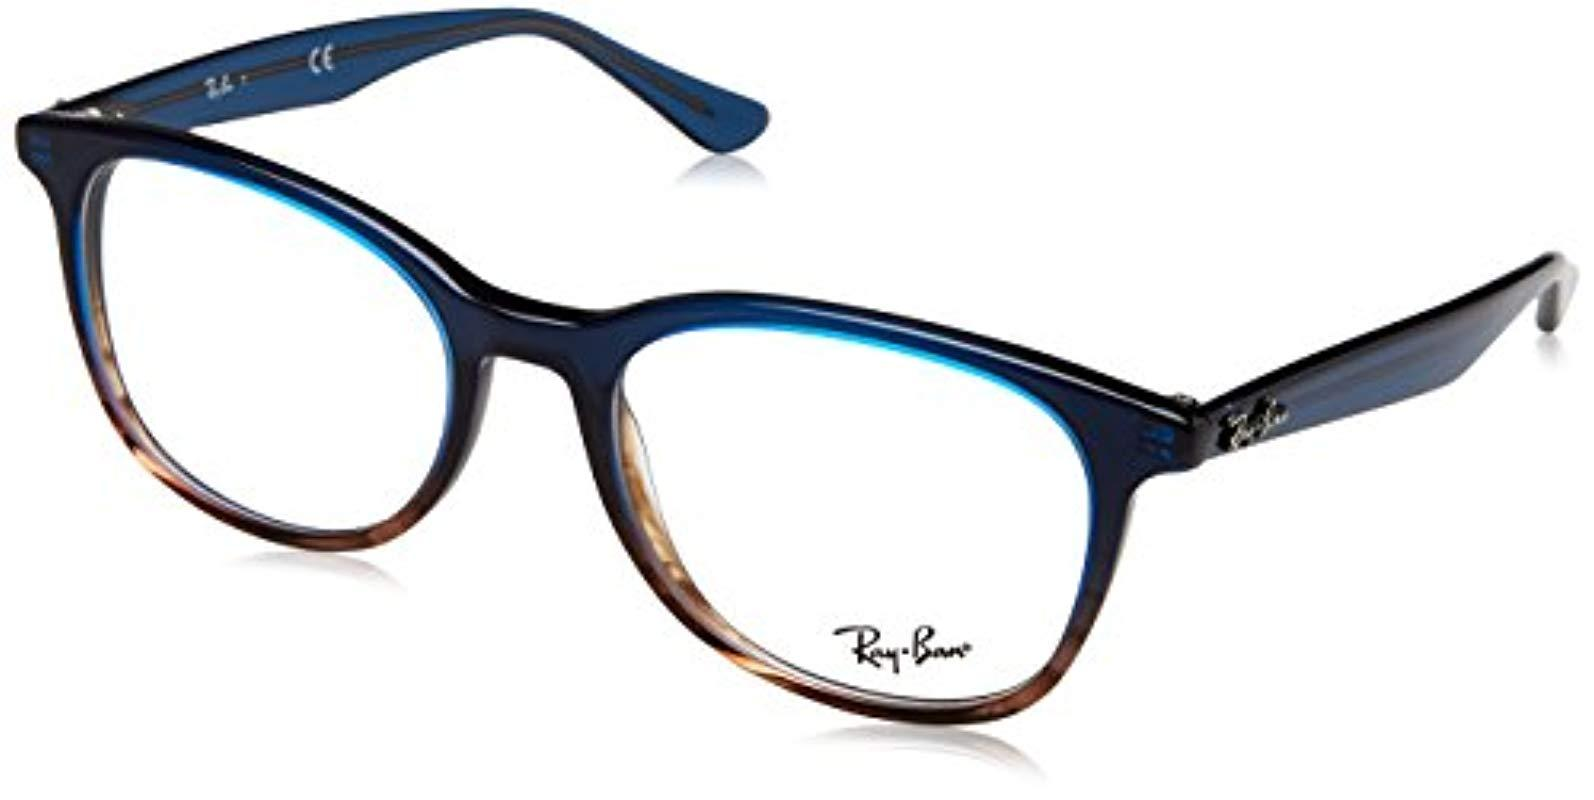 723fd20458 Ray-Ban  s 0rx 5356 5765 54 Optical Frames Gradient Blue On Striped ...